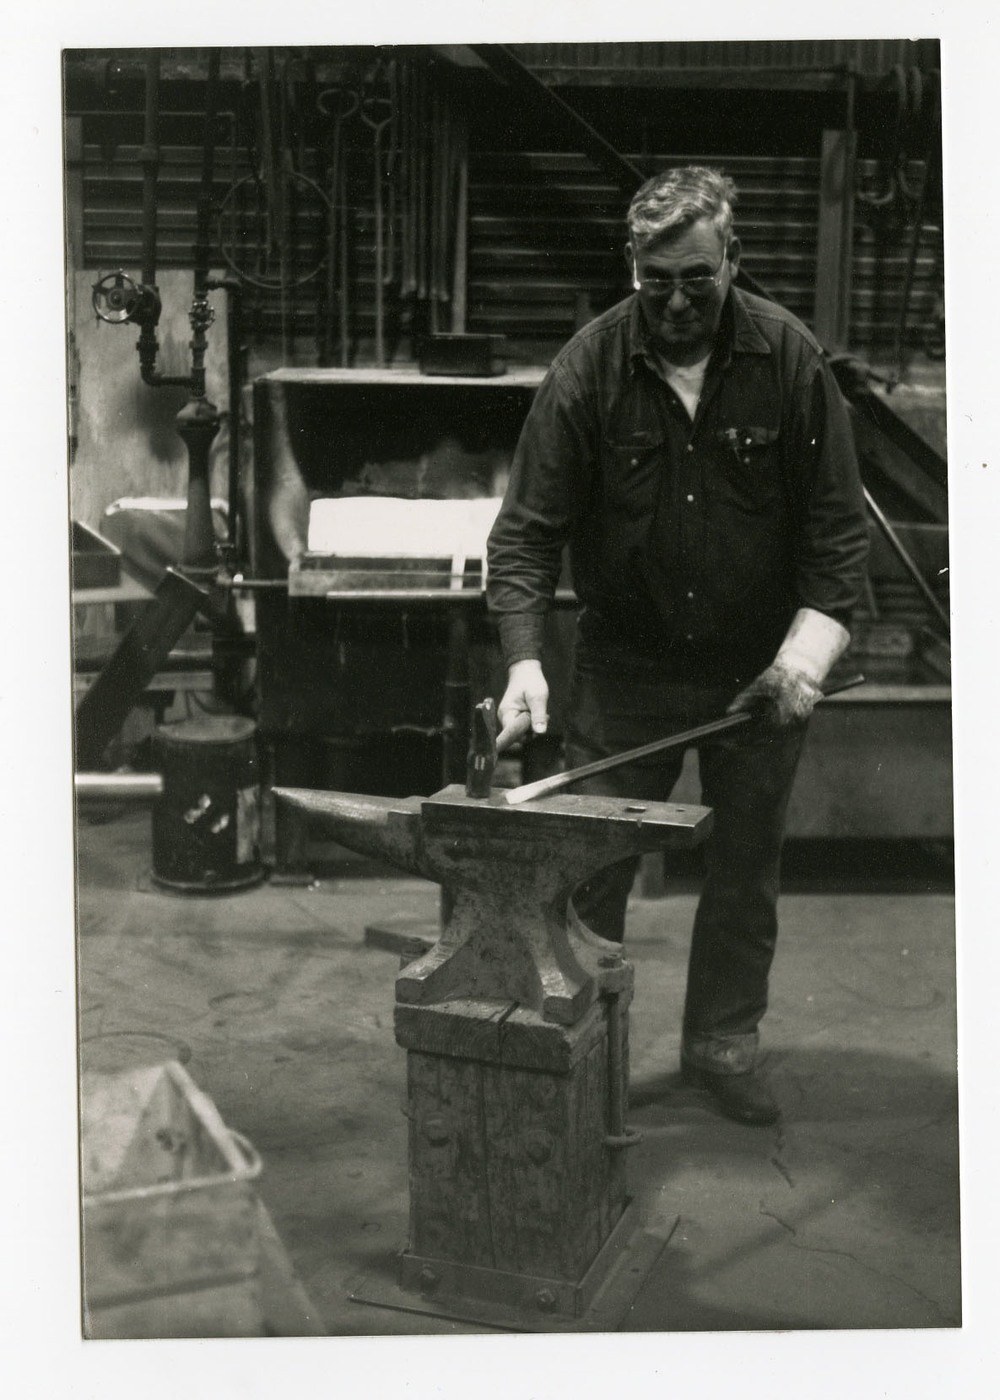 Blacksmith Boilermaker At Work